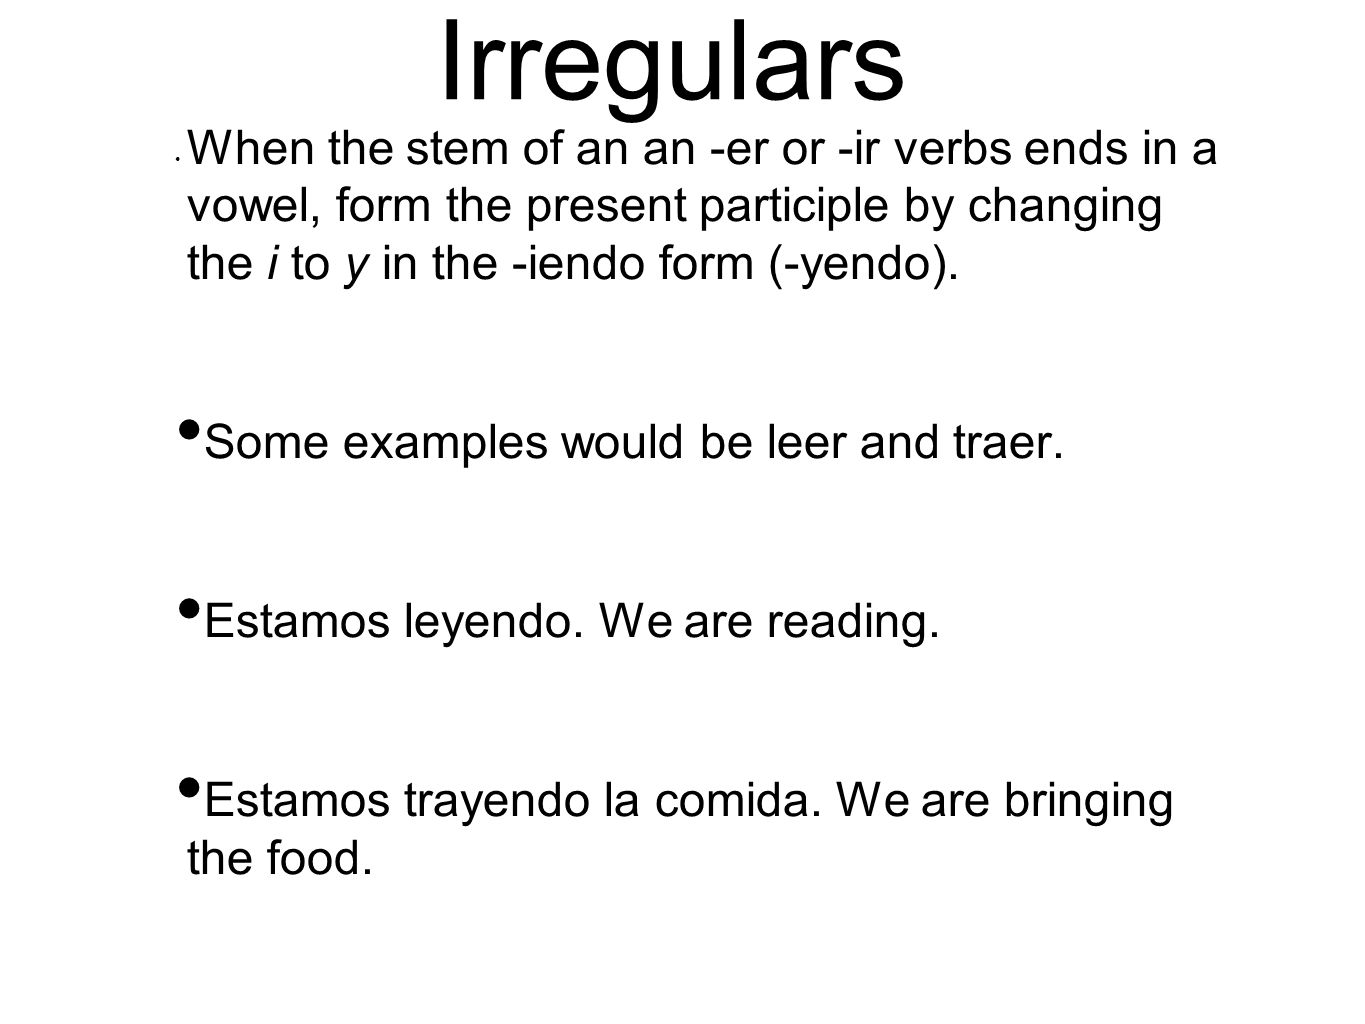 Irregulars When the stem of an an -er or -ir verbs ends in a vowel, form the present participle by changing the i to y in the -iendo form (-yendo). So